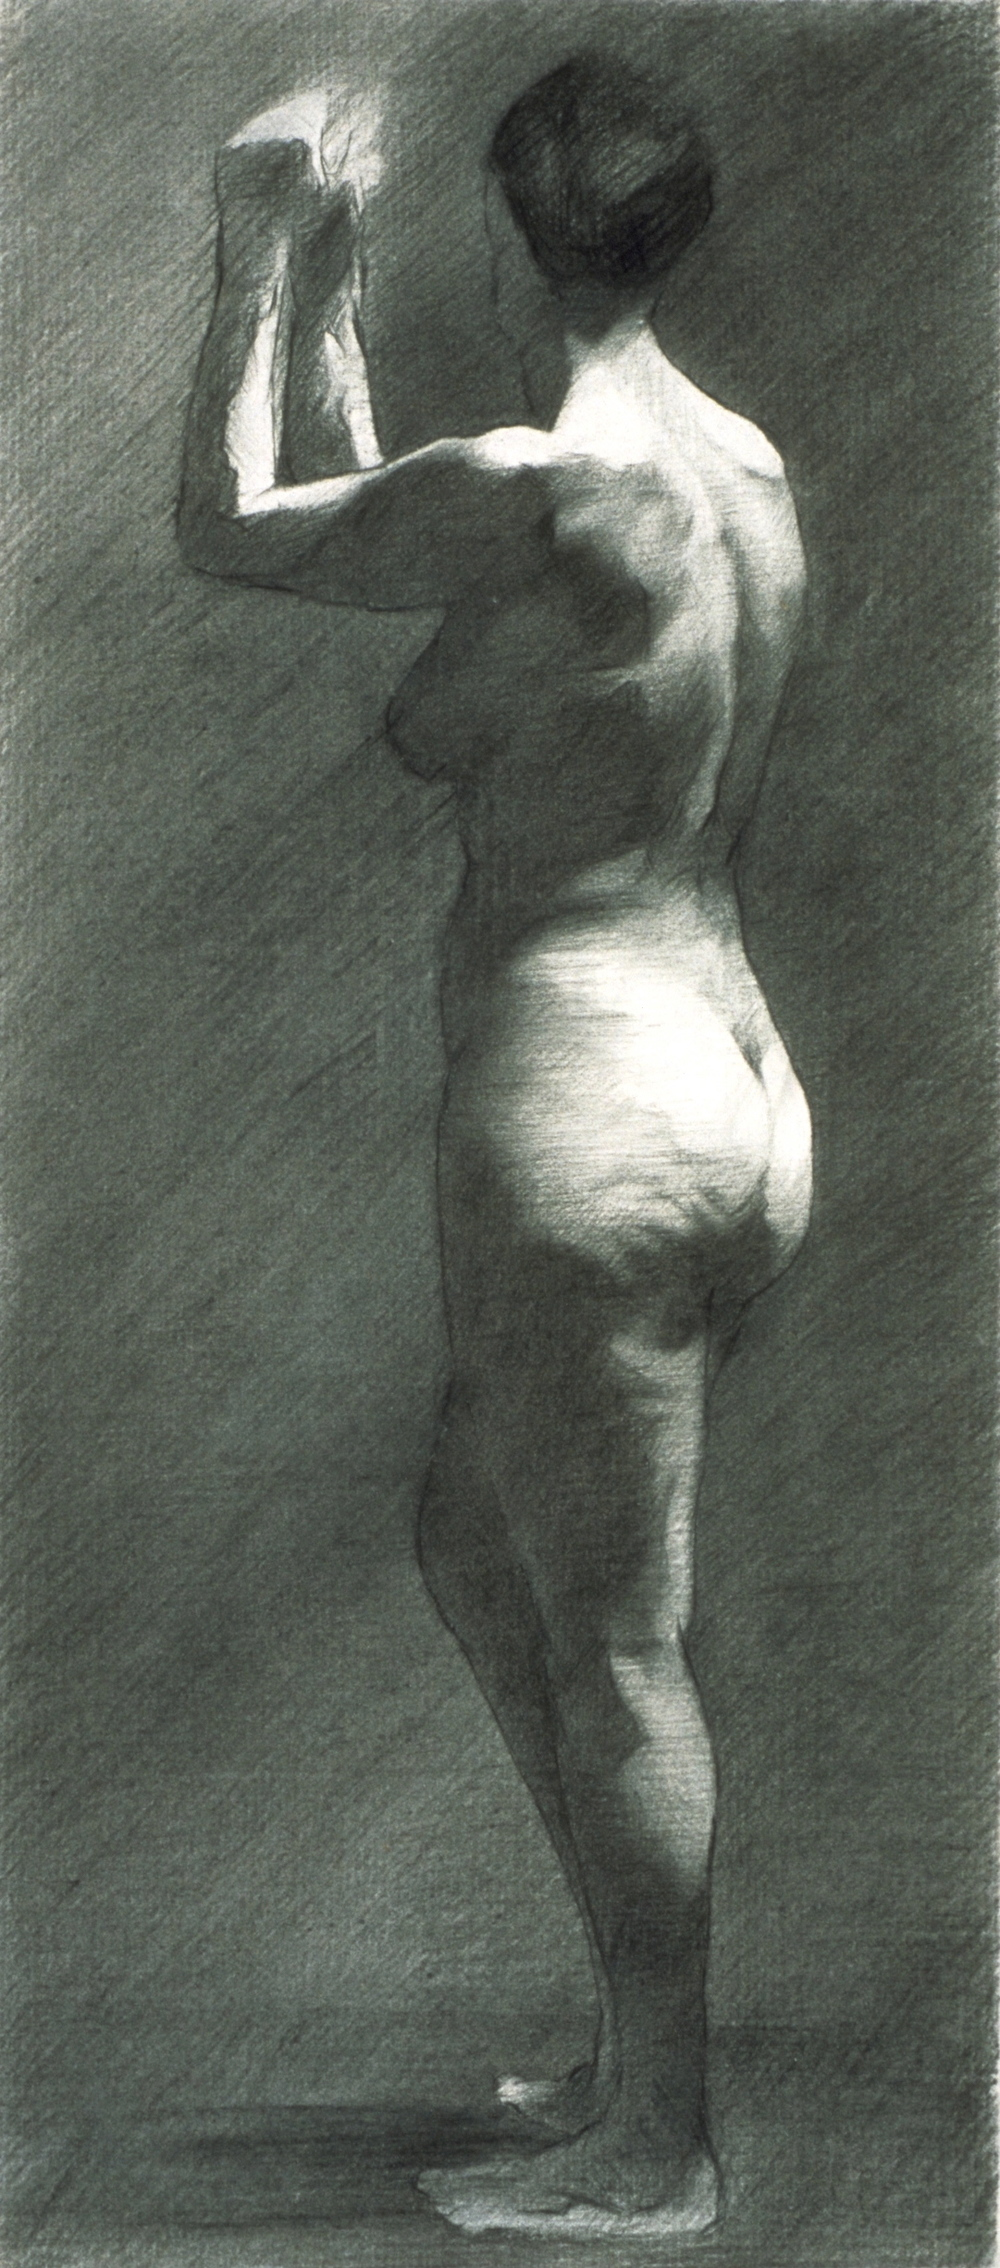 Female Nude, arms raised